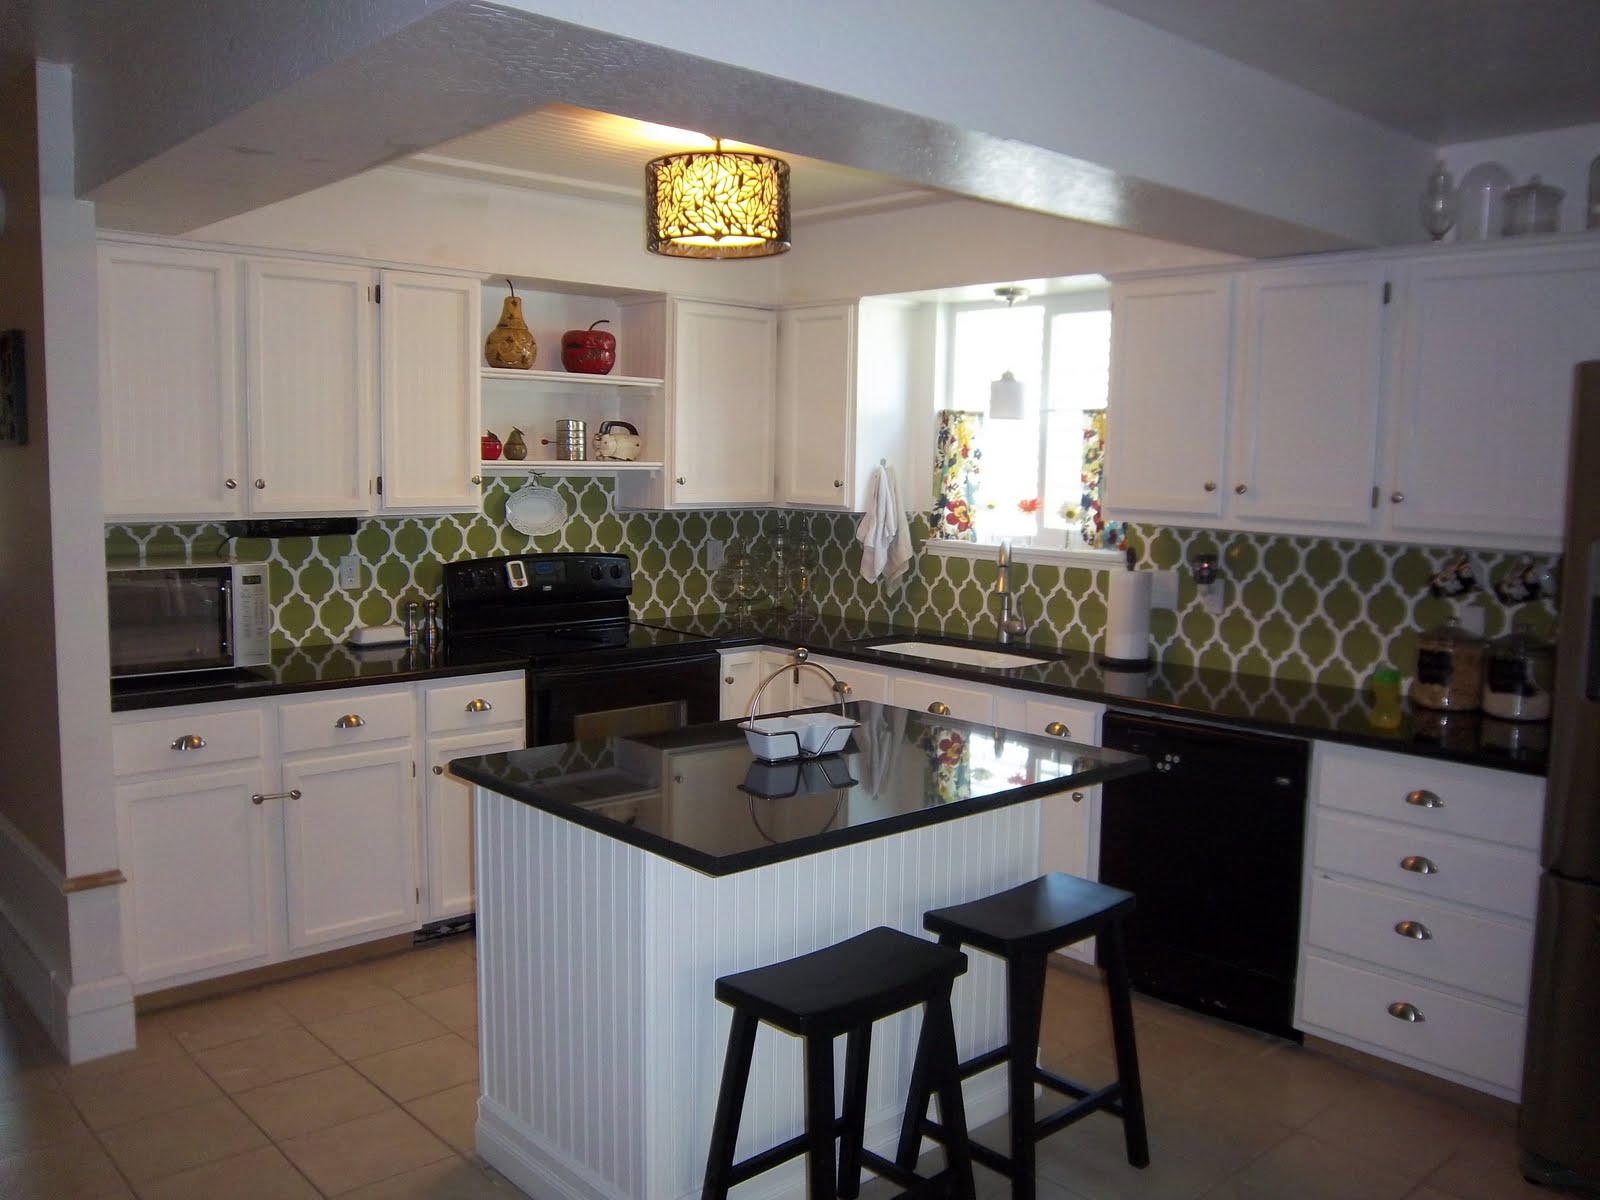 Remodelaholic kitchen remodel on a budget for Kitchen remodels on a budget photos